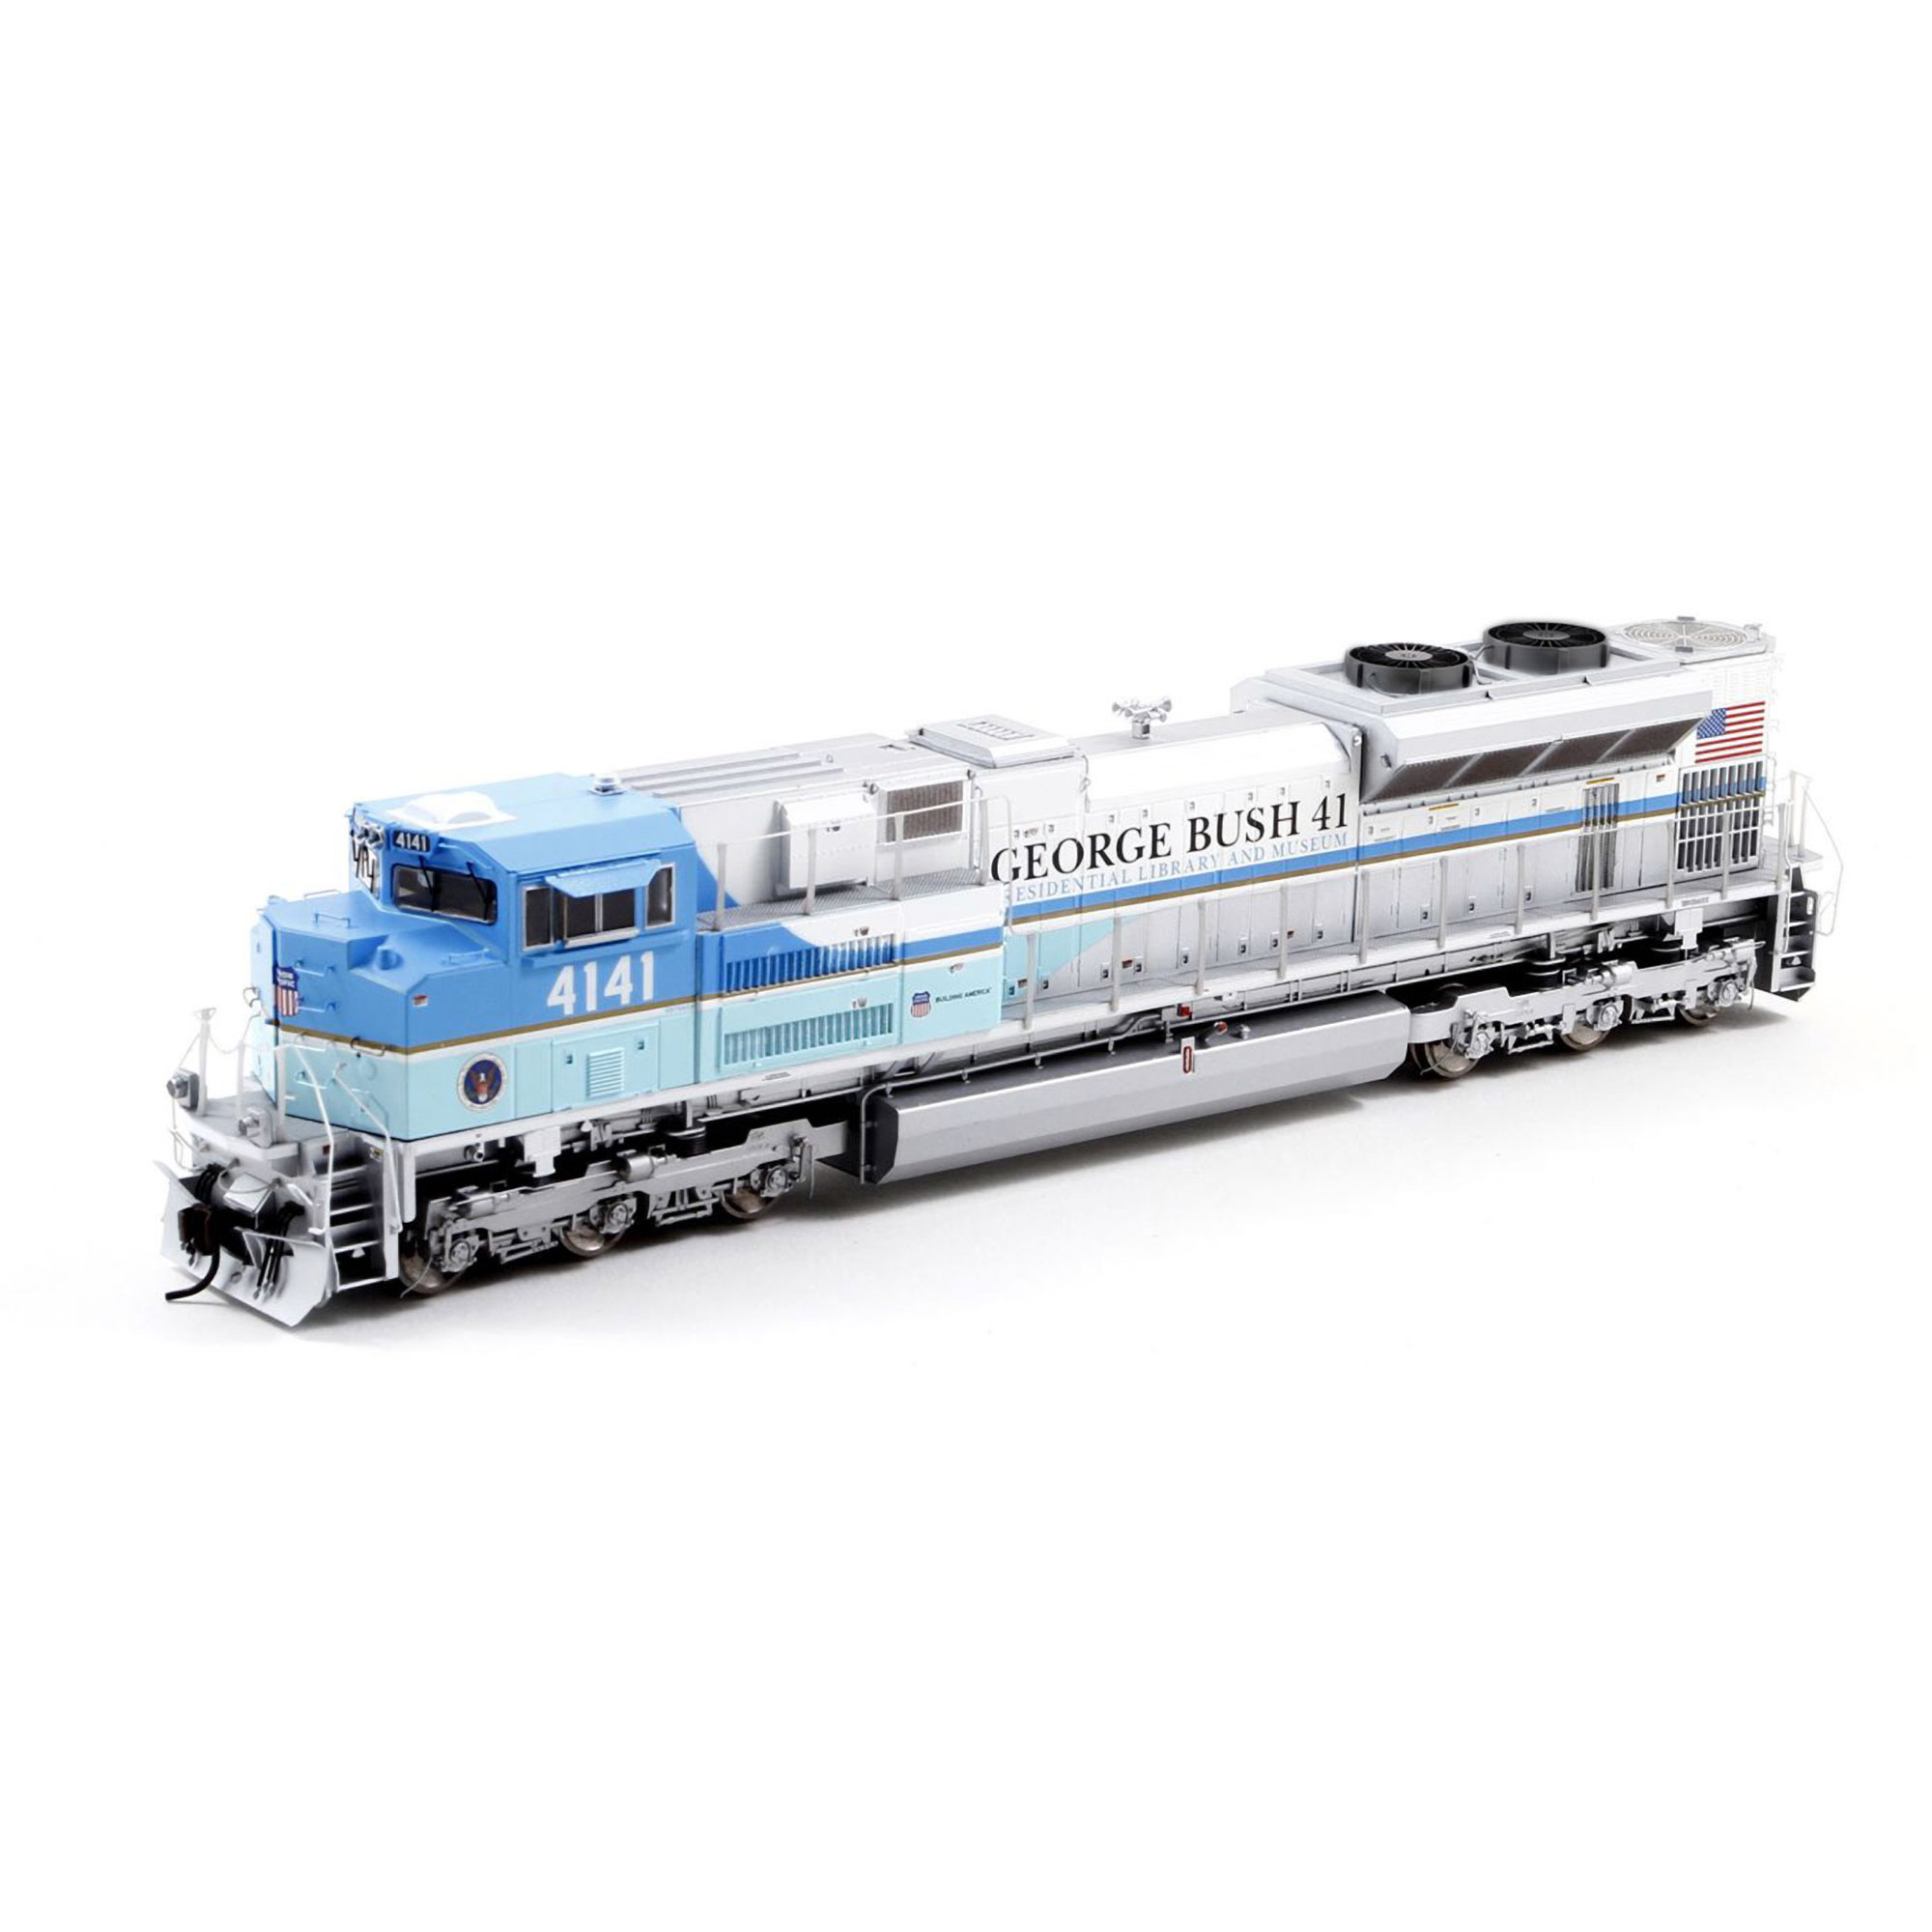 Athearn Genesis G41410 HO Scale  SD70ACe, UP/George HW Bush #4141 DCC Ready